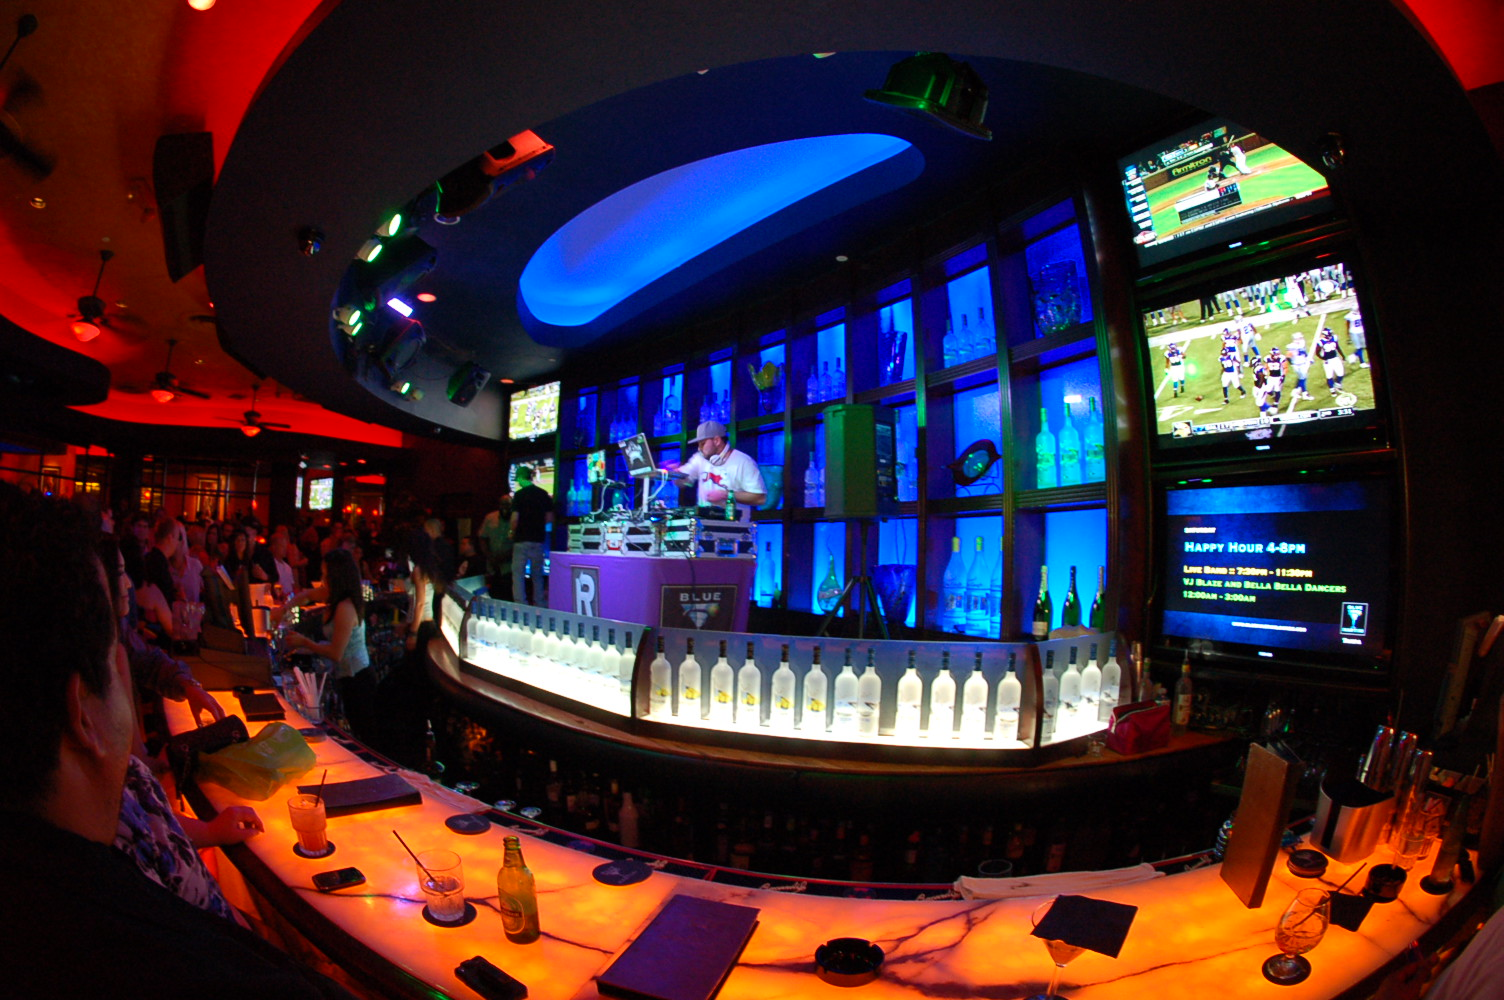 Blue_Martini_nightclub_american_vacation_living_orlando - disney